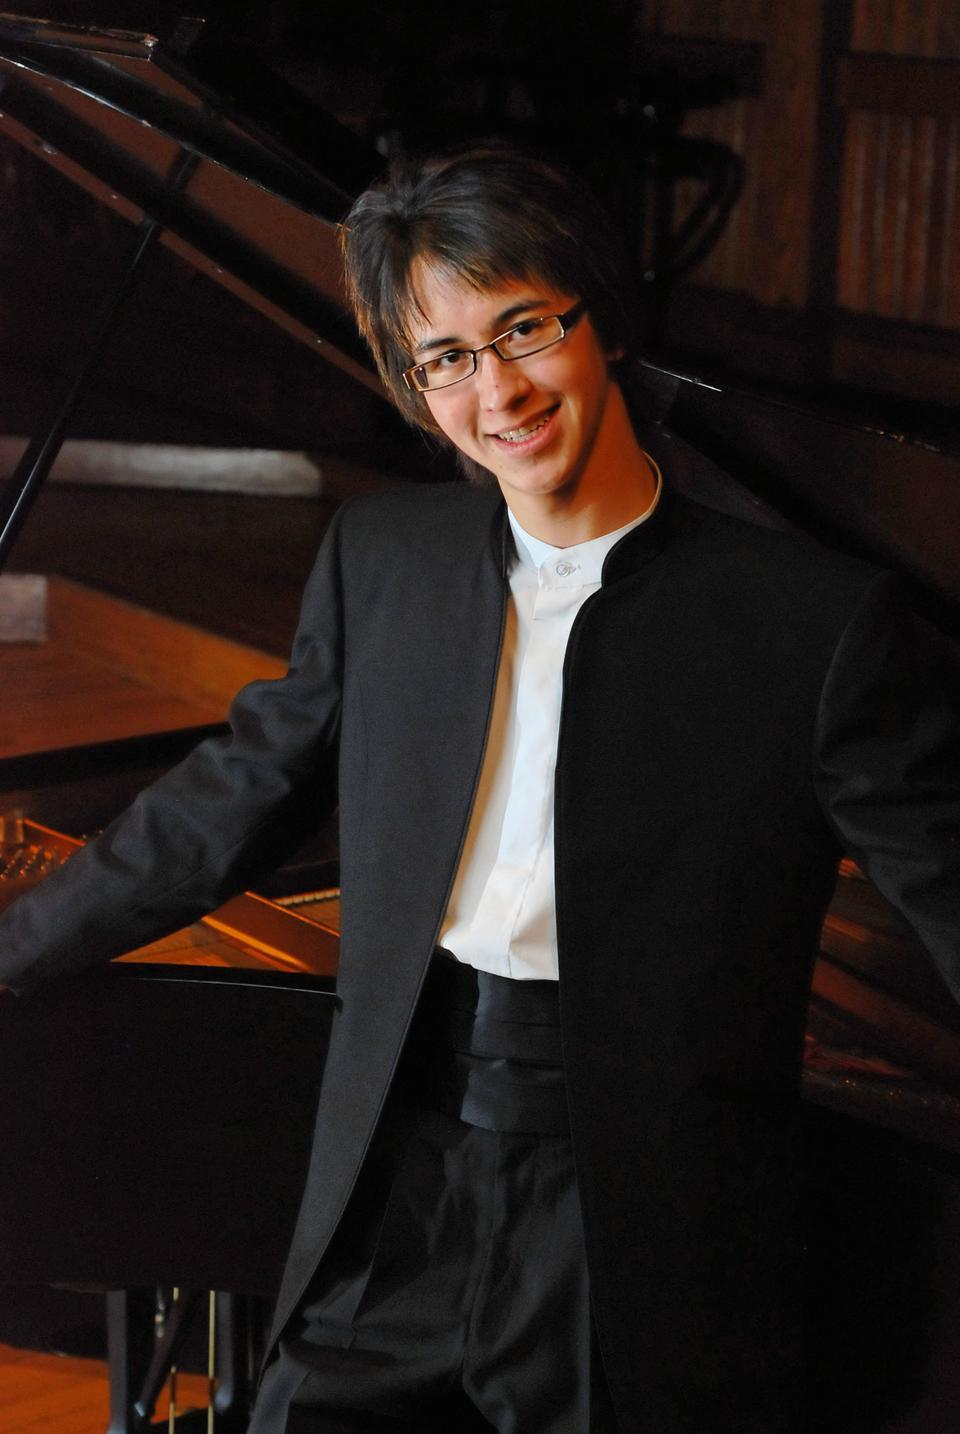 Charlie Albright, a classic pianist extraordinaire, is a senior enrolled in the Harvard/New England Conservatory of Music (NEC) Five-Year B.A./M.M Joint Program.